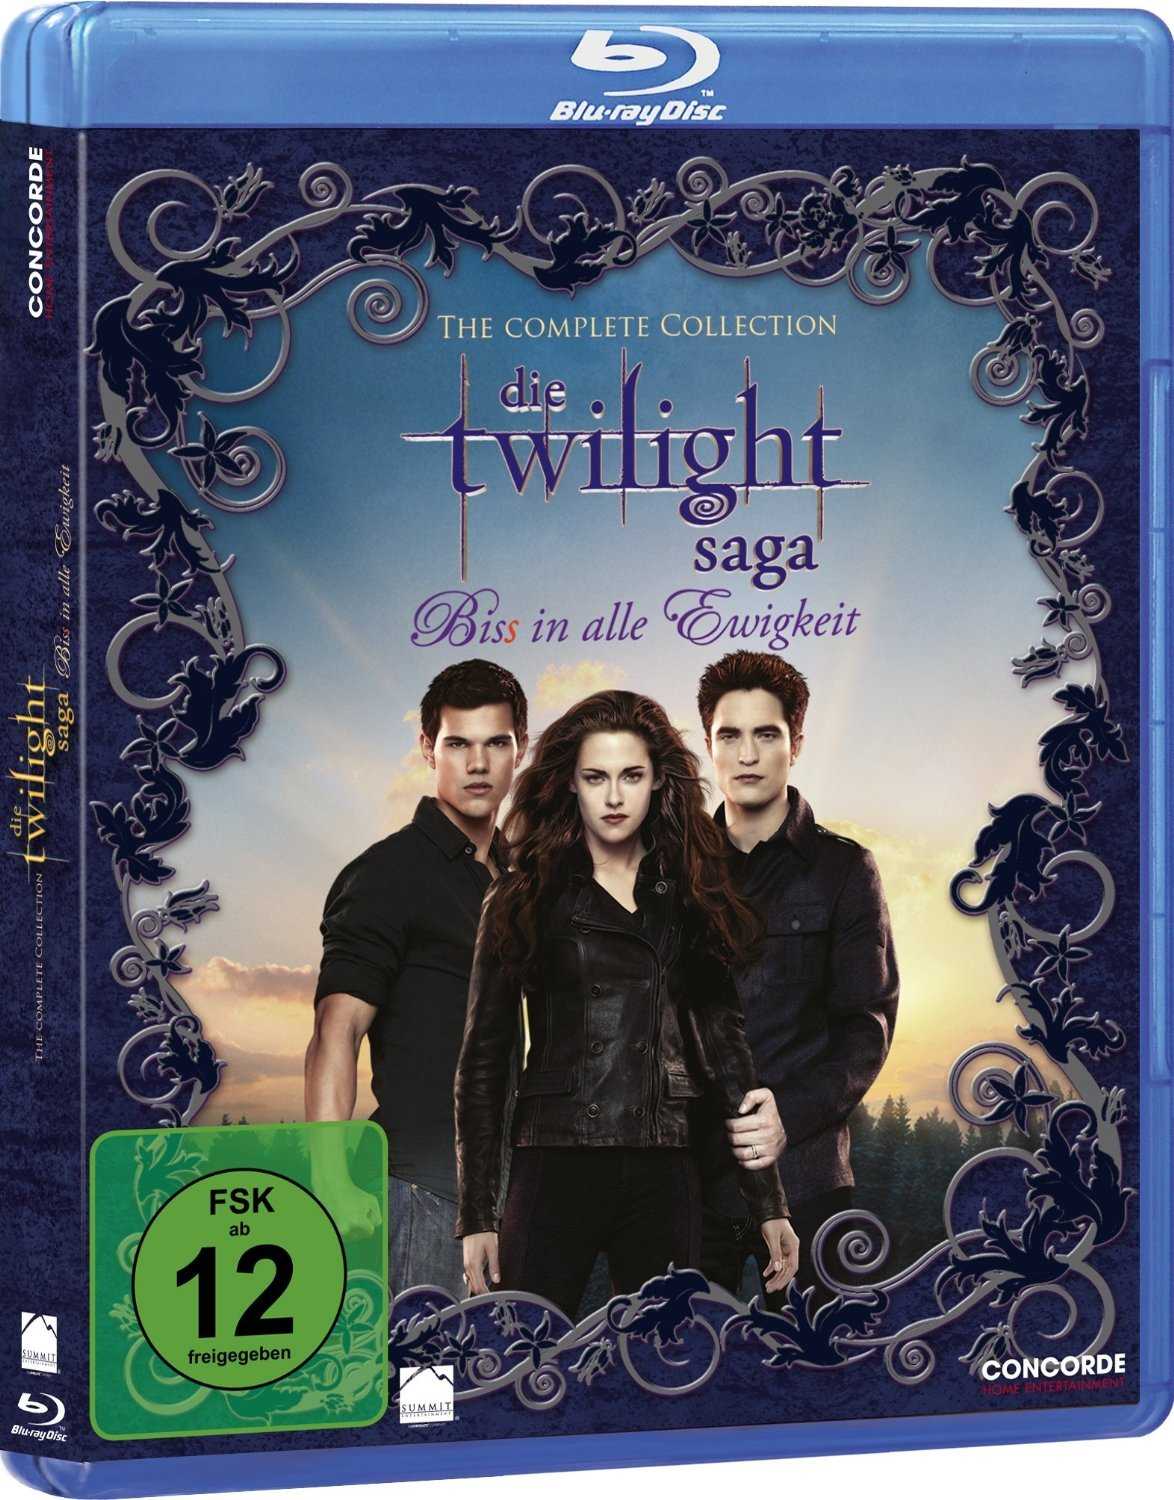 Image of Die Twilight Saga - The Complete Collection